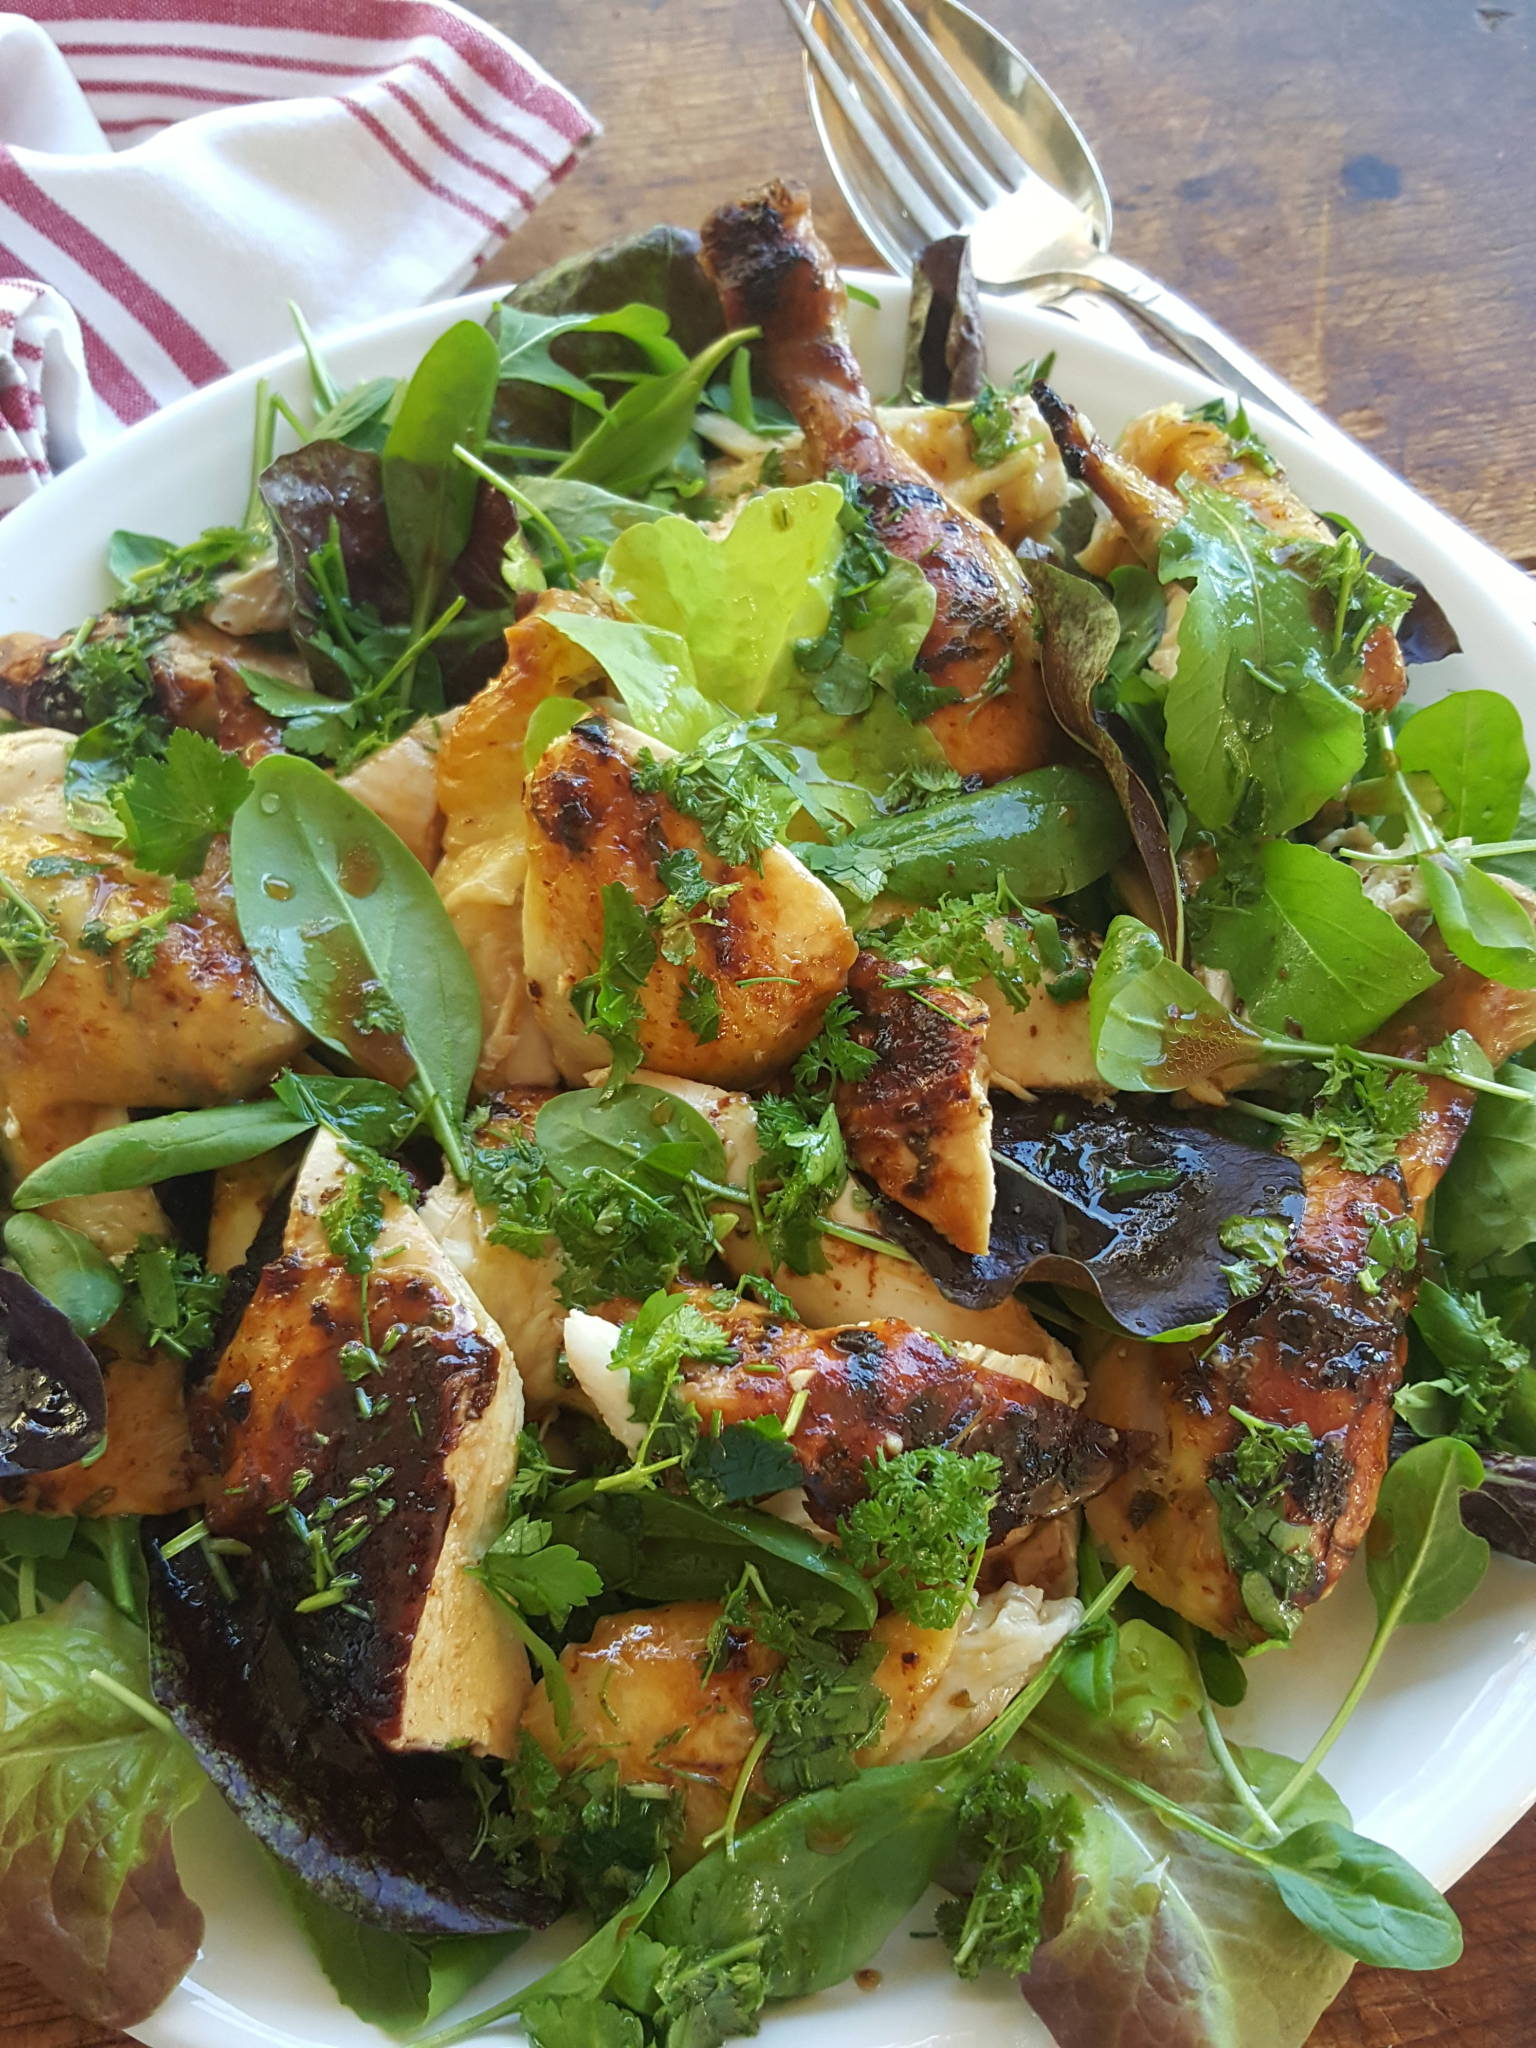 Chicken French Roast with salad